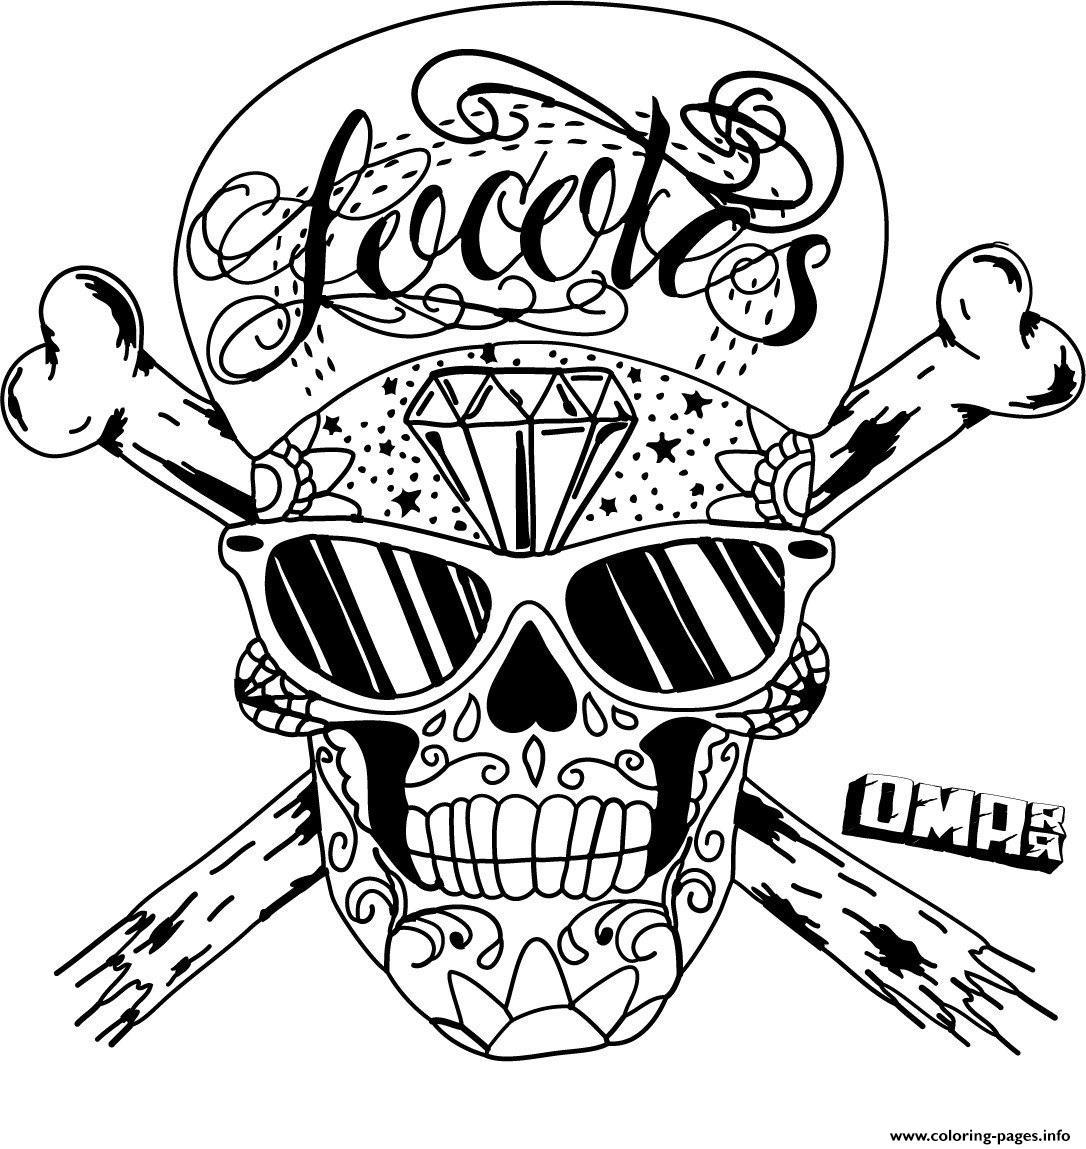 coloring pages skull mexican sugar skull coloring pages at getdrawings free coloring pages skull